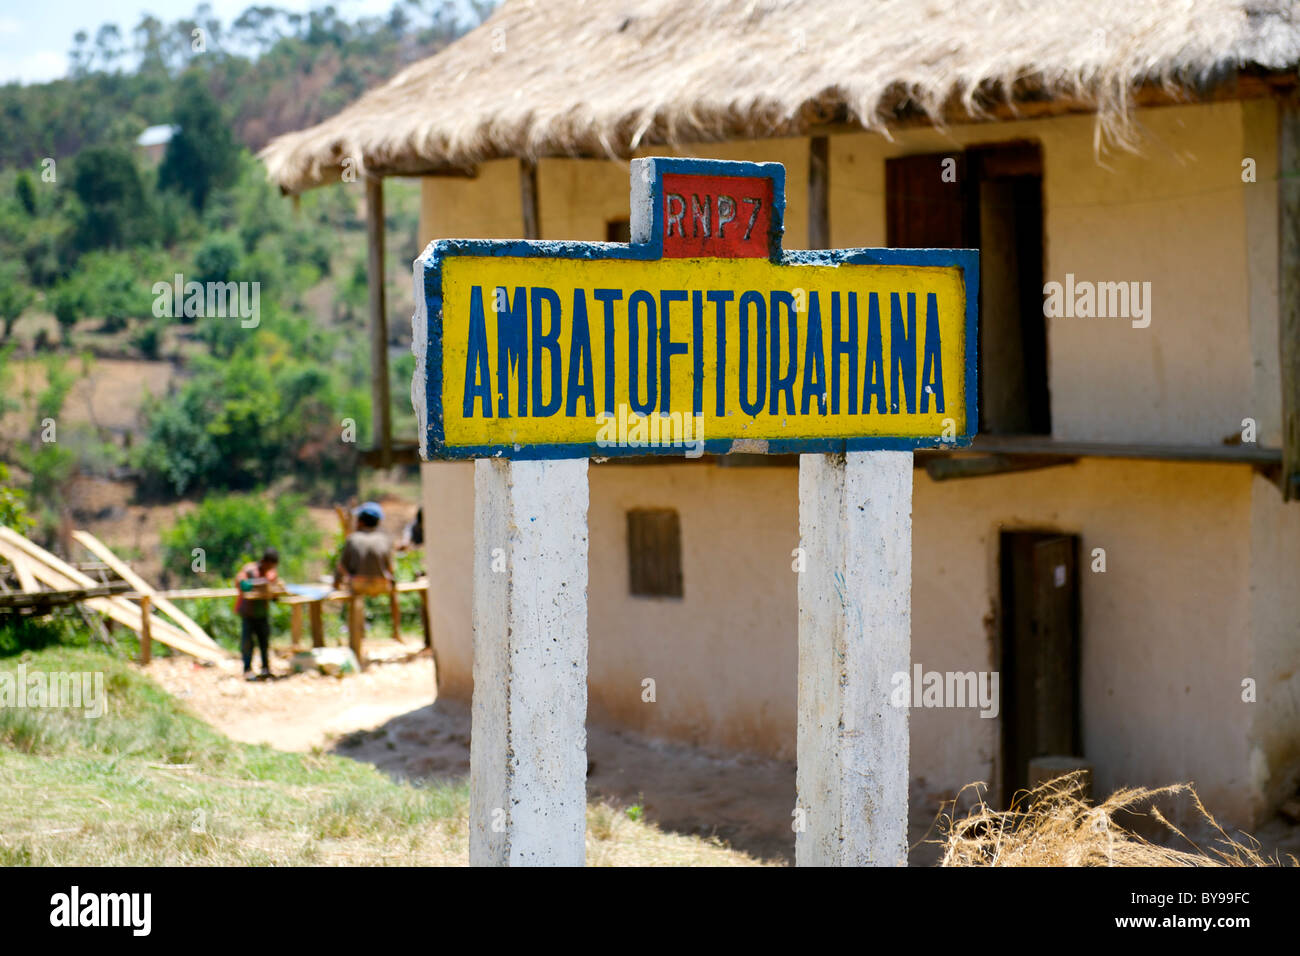 Road sign for the village of Ambatofitorahana on the RN7 road in southern Madagascar. - Stock Image